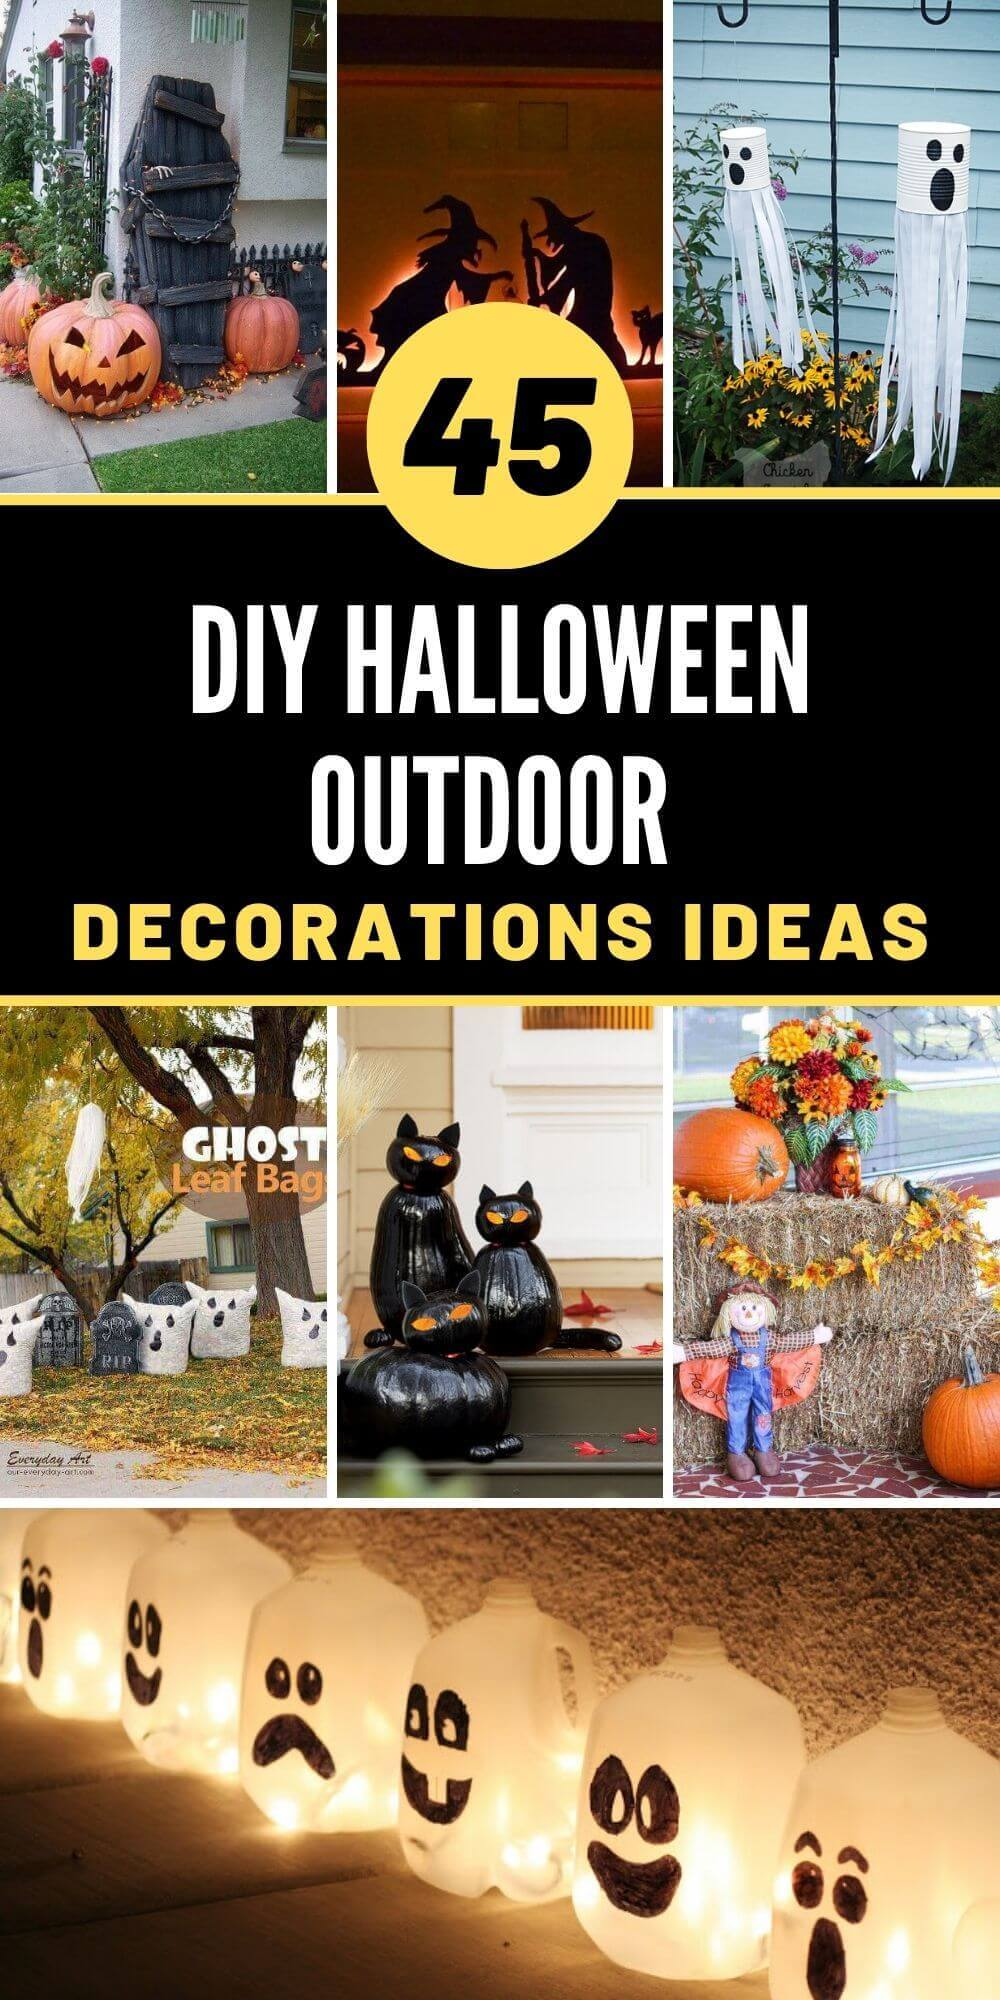 45 Best DIY Halloween Outdoor Decorations